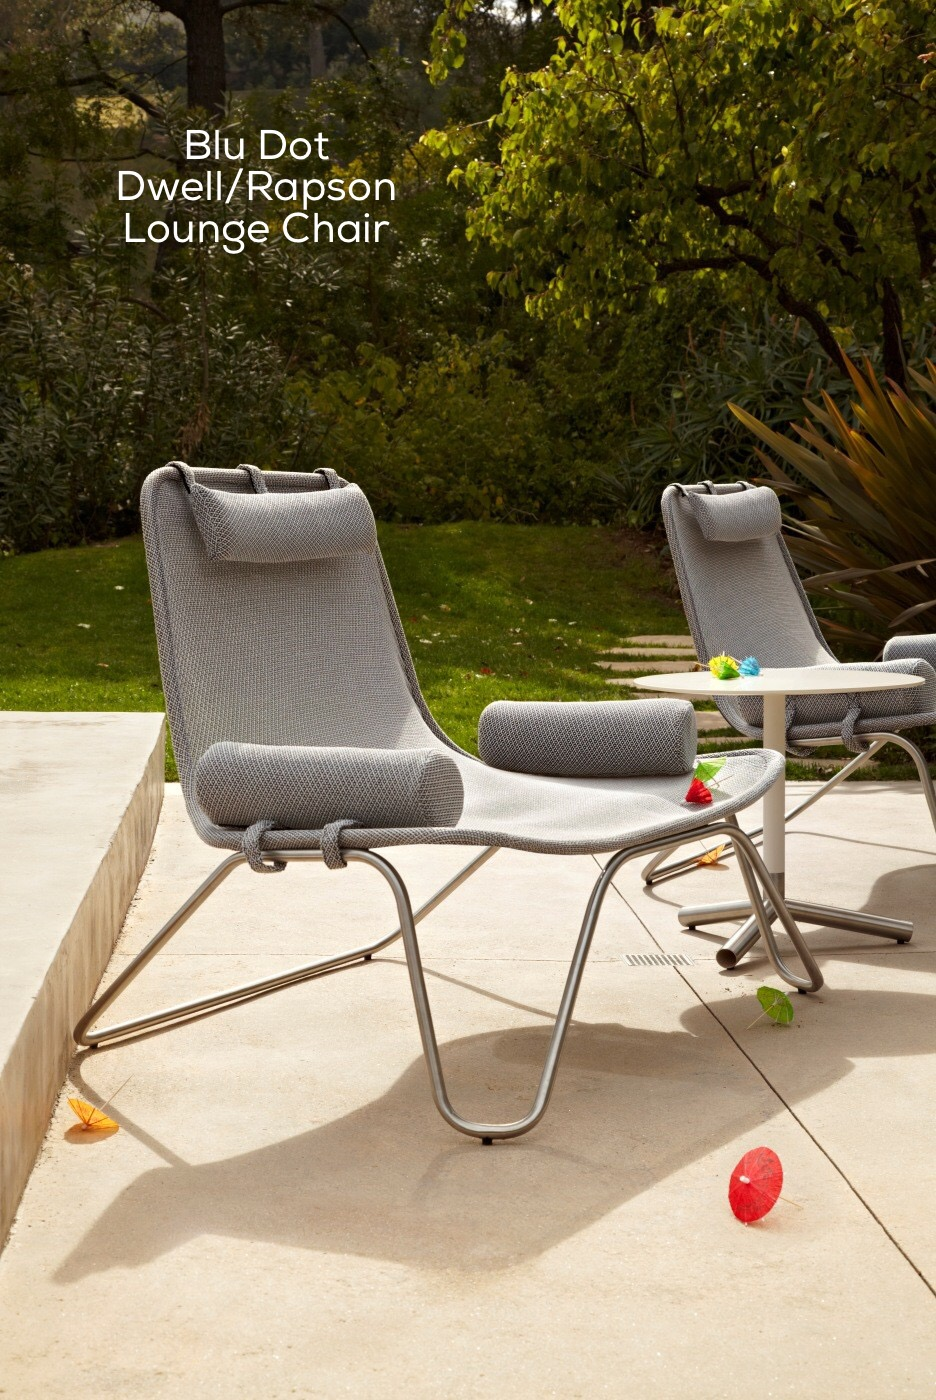 Blu Dot Dwell/Rapson Lounge Chair